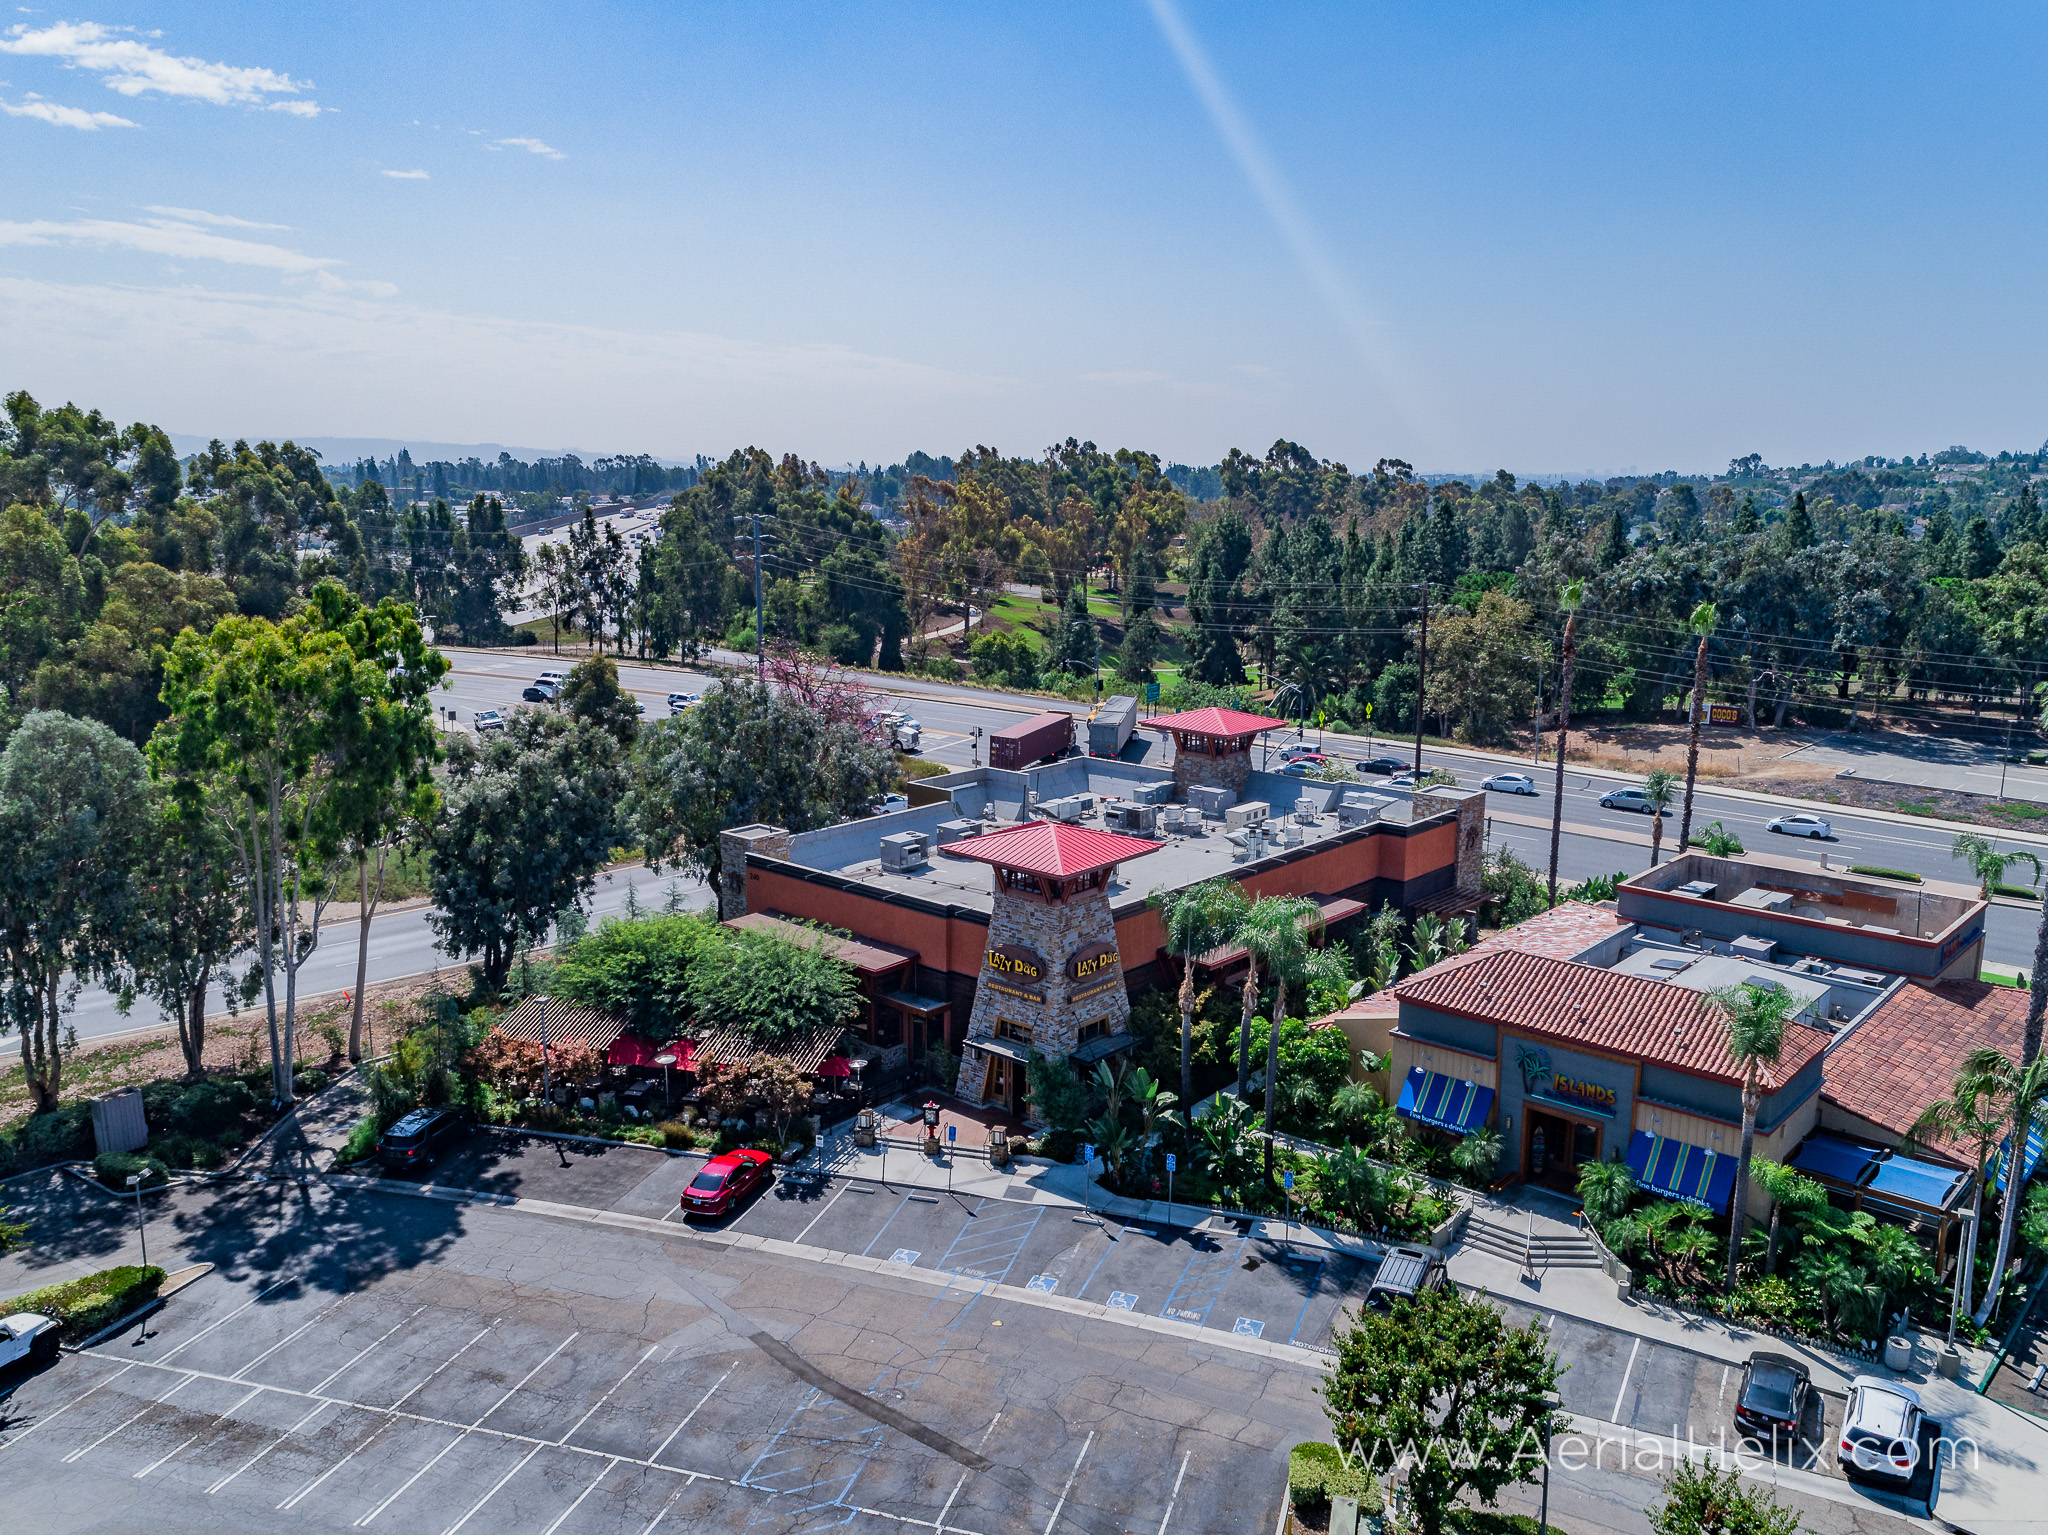 Lazy Dog Cafe - HELIX Commercial Real Estate Aerial Photographer-14.jpg